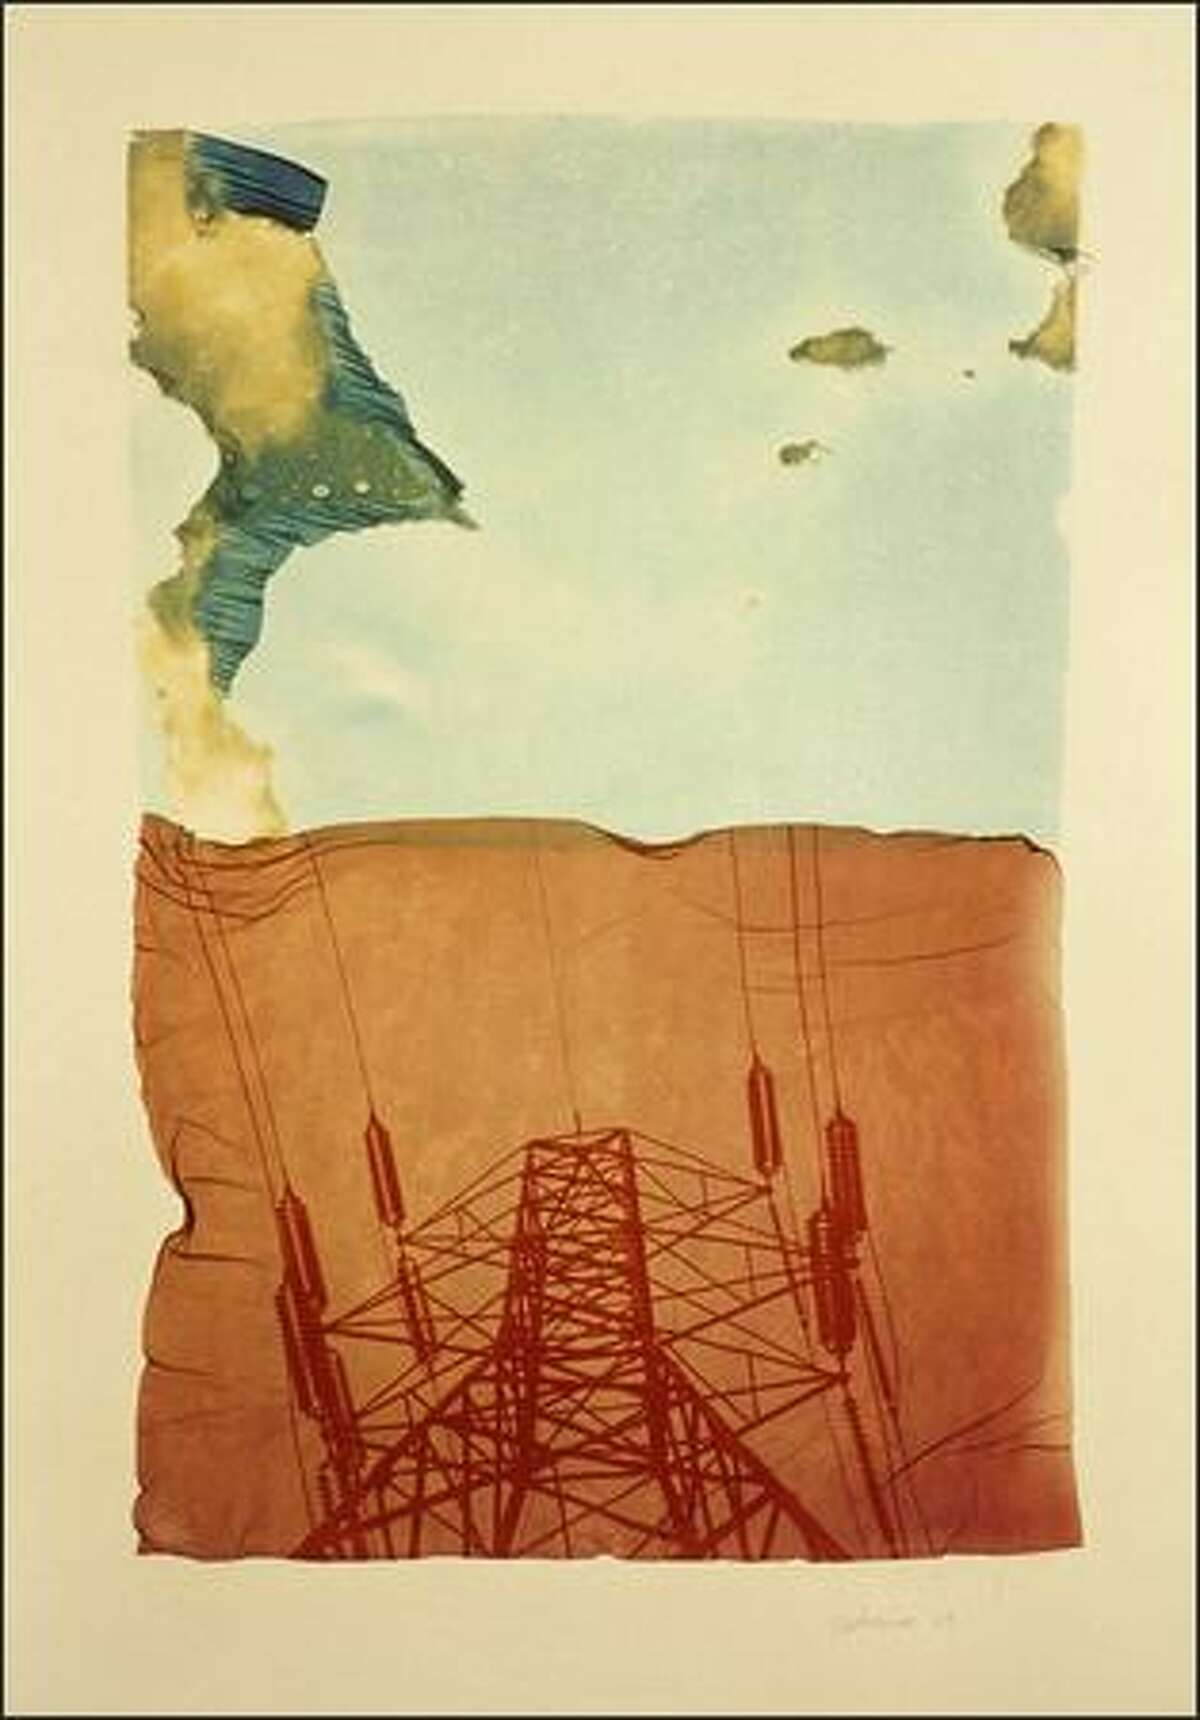 Shirley Scheier often employs images of electrical transmission towers in her art. In Snohomish,